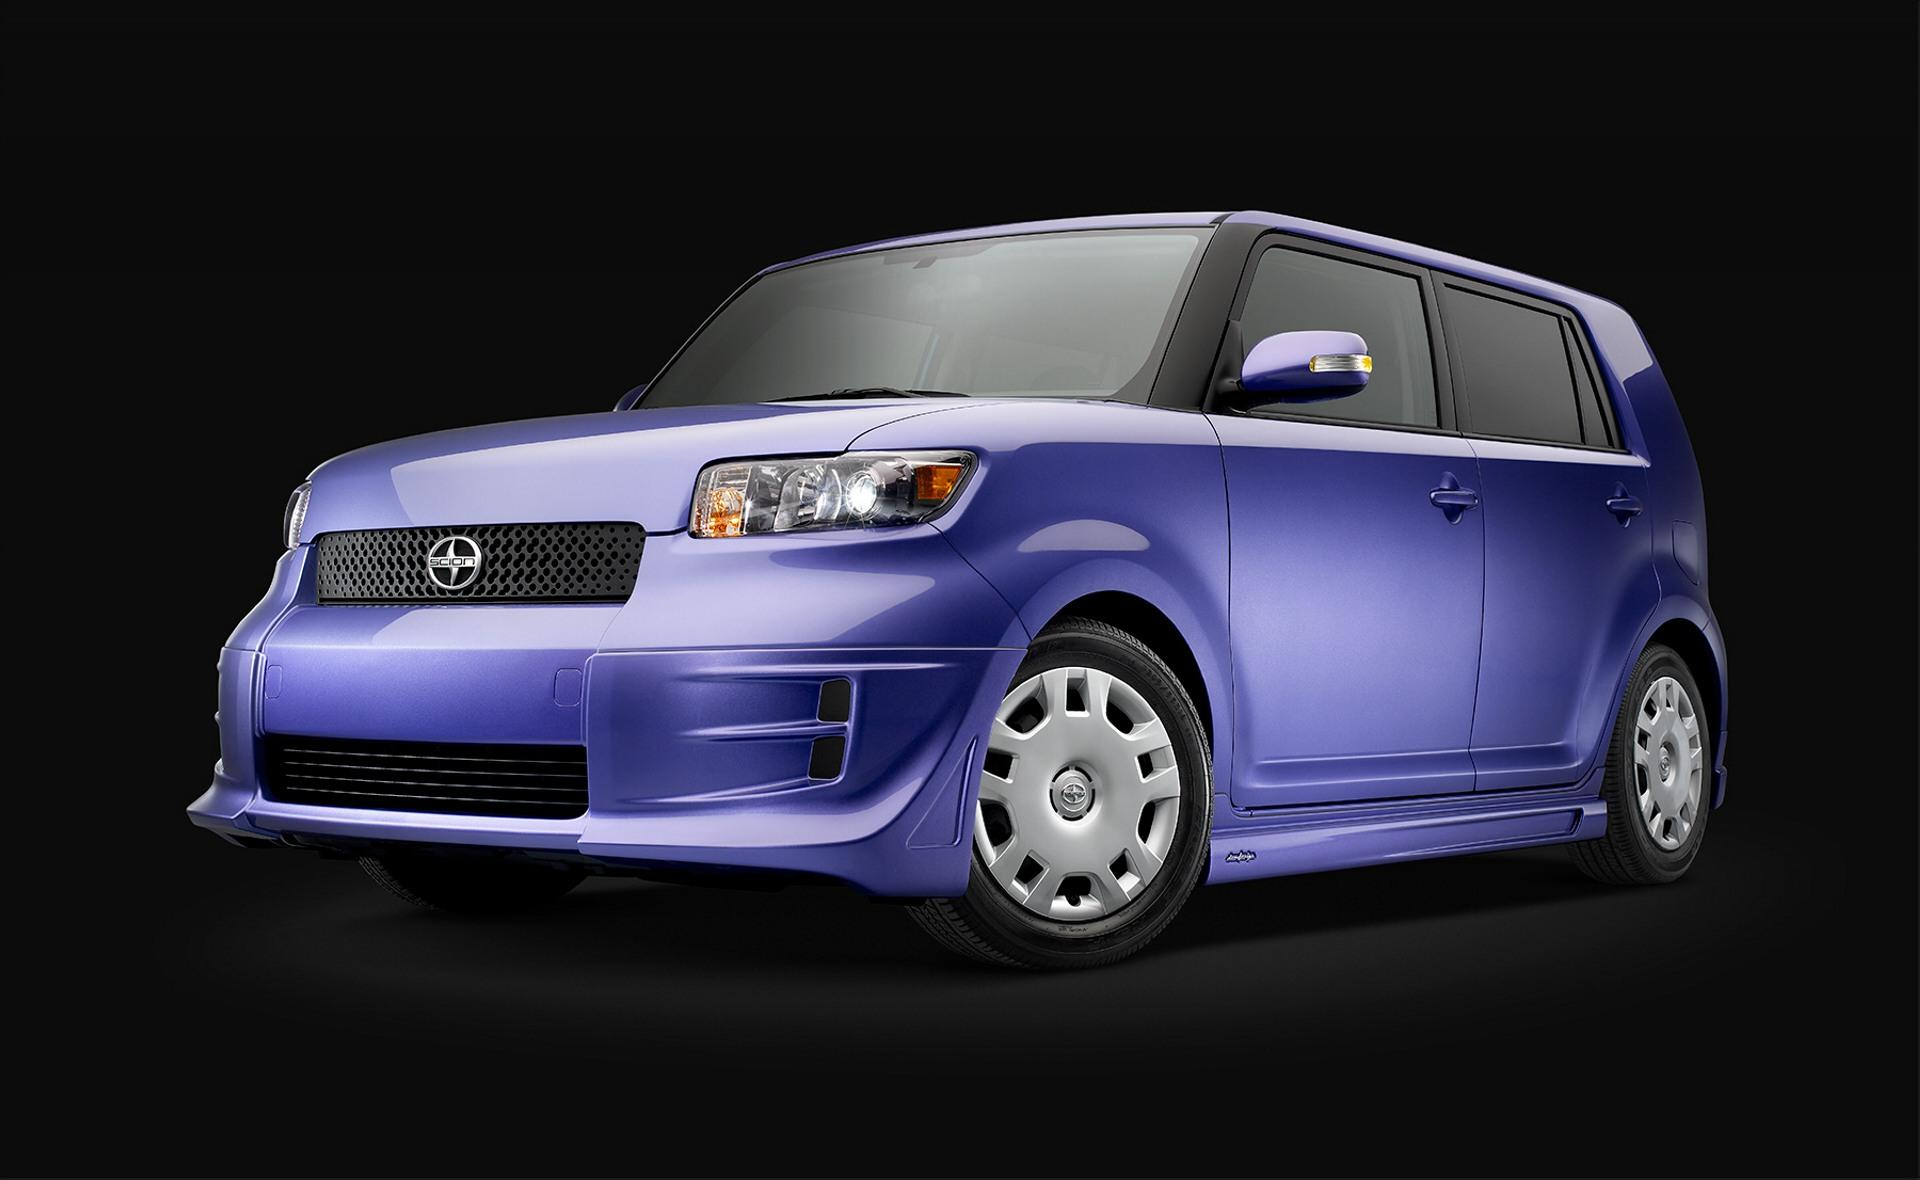 2010 Scion Xb Release Series 7 0 News And Information